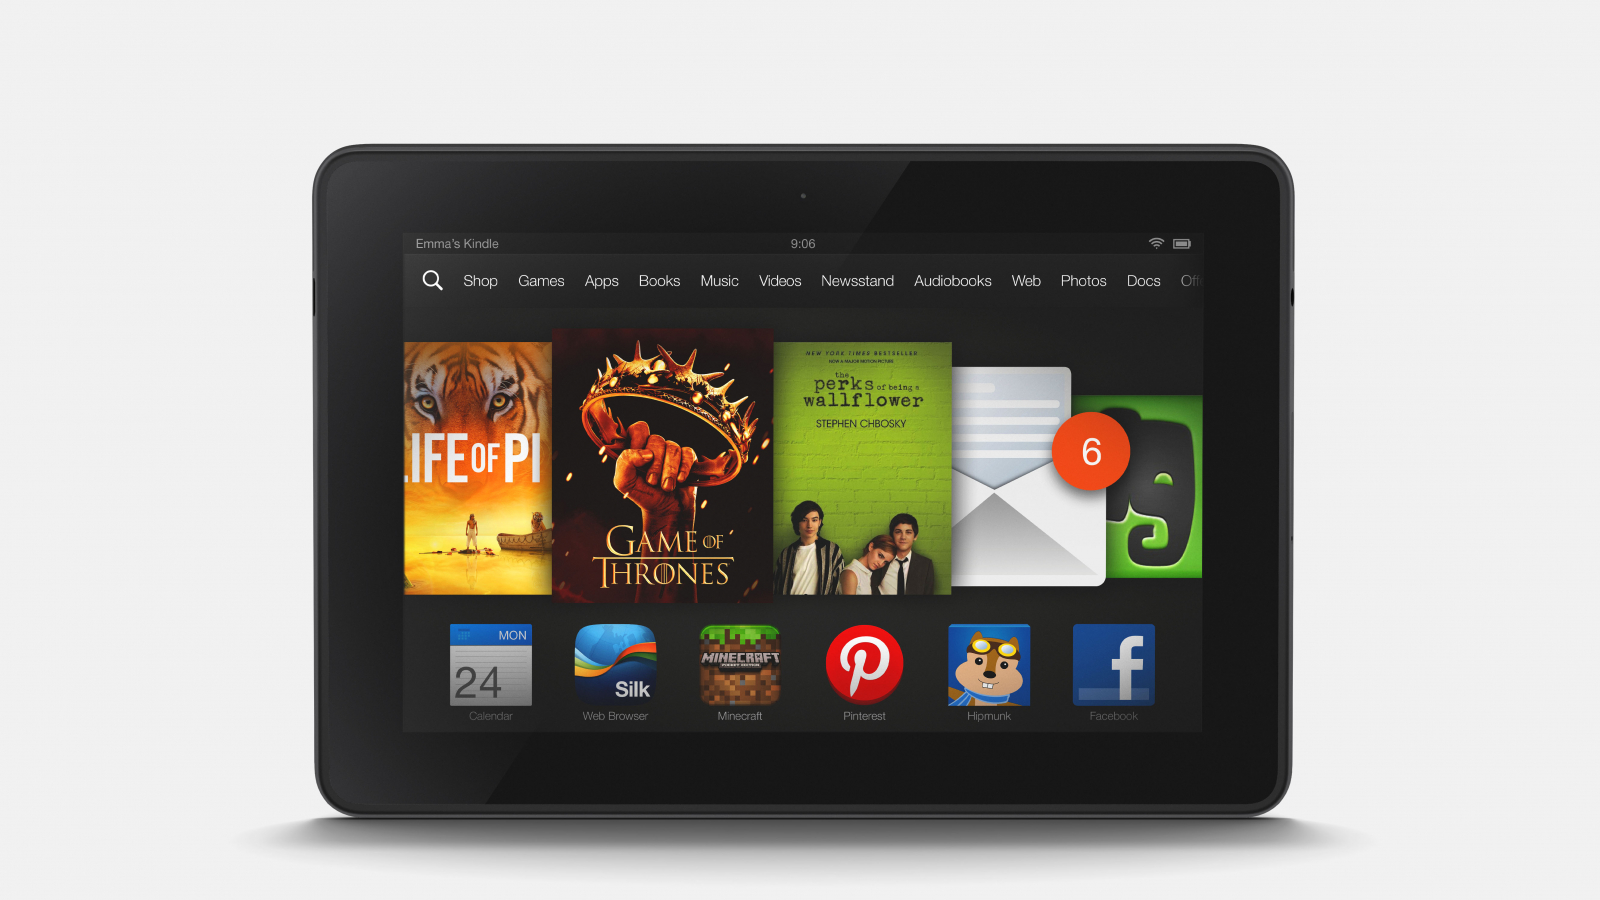 Bring the Radiance: Edit Wedding Photos PicMonkey Blog Does the new kindle fire take pictures